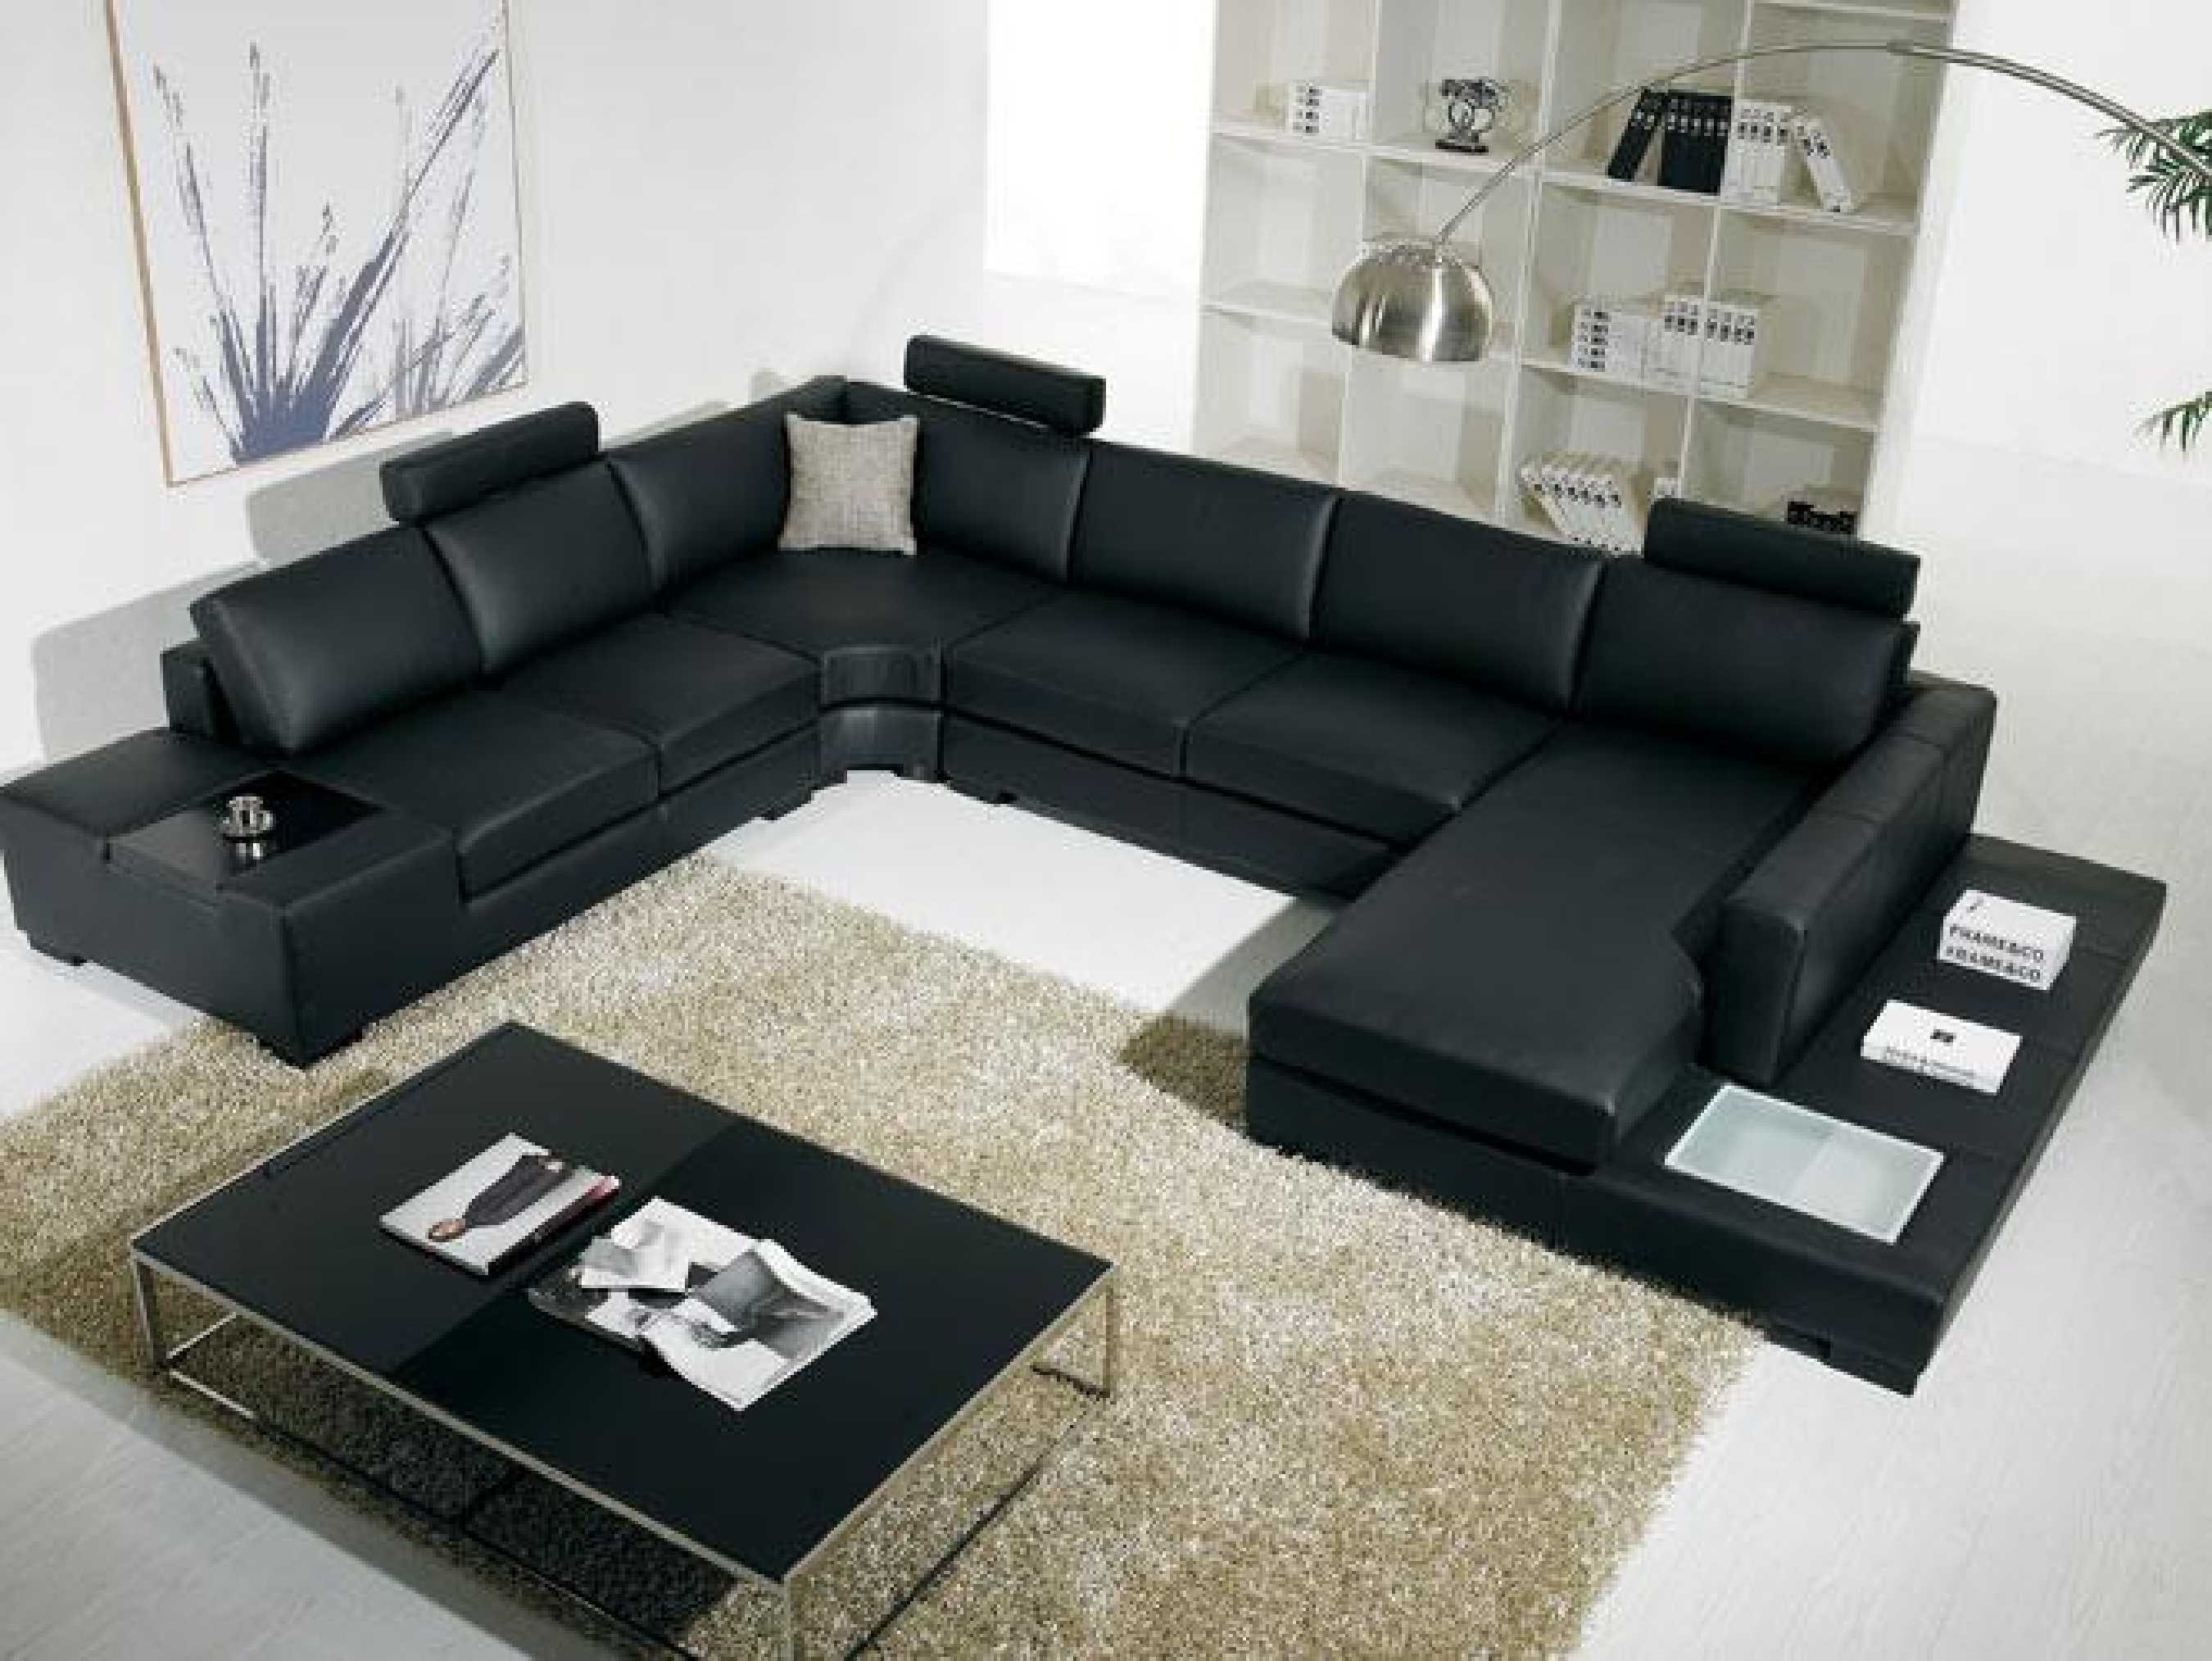 Large Sectional Sofas | Cheap Sectional | Sofa Bed Sectional